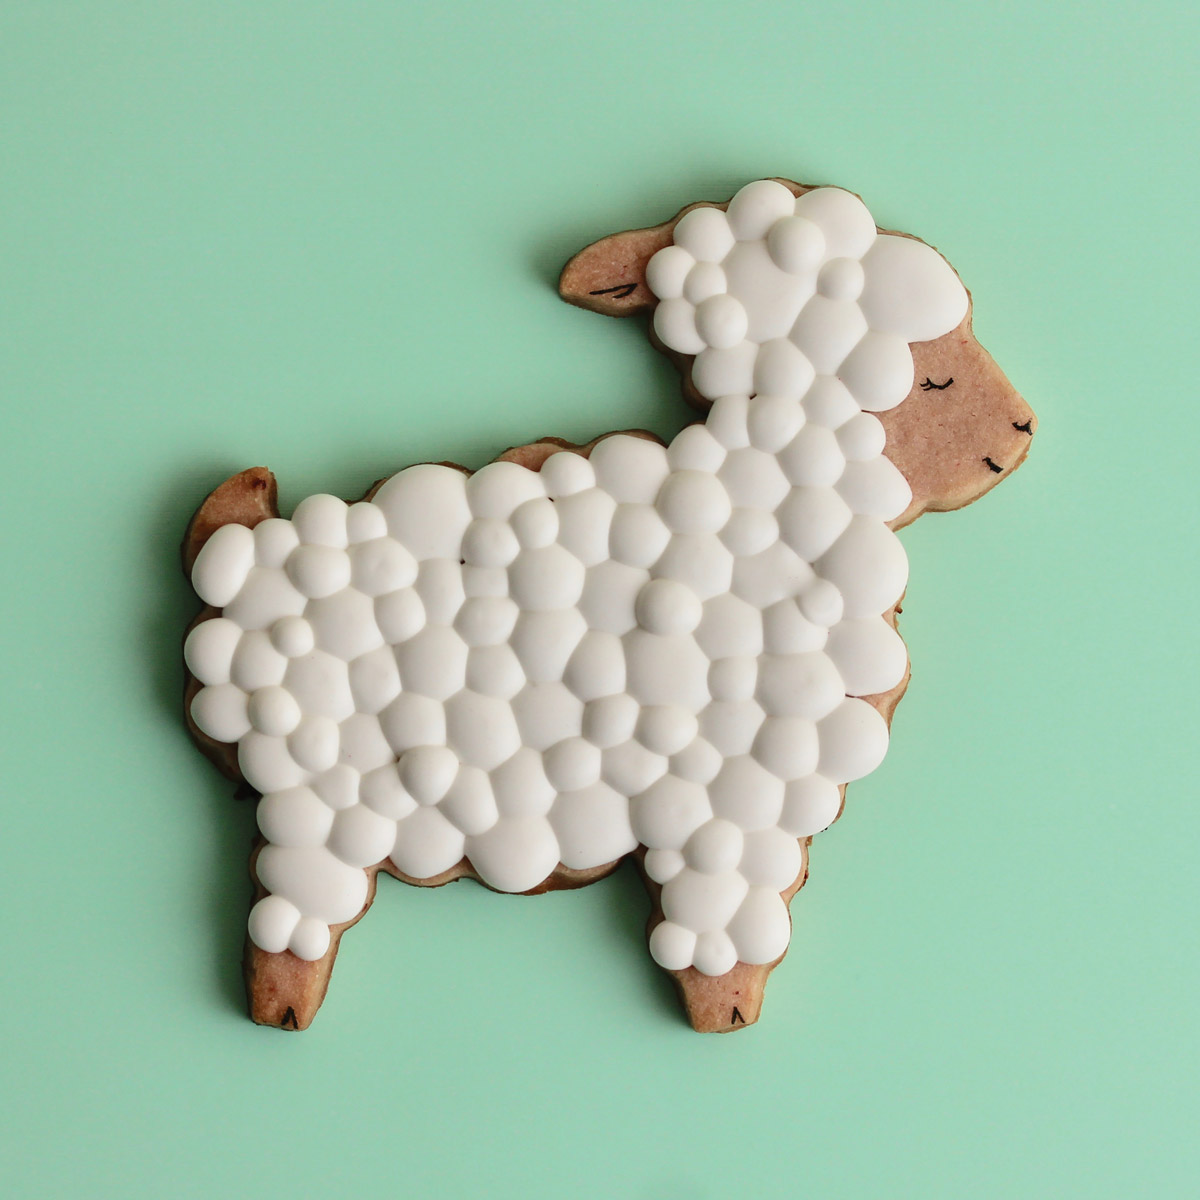 A Kookie House cookie in the shape of a sheep